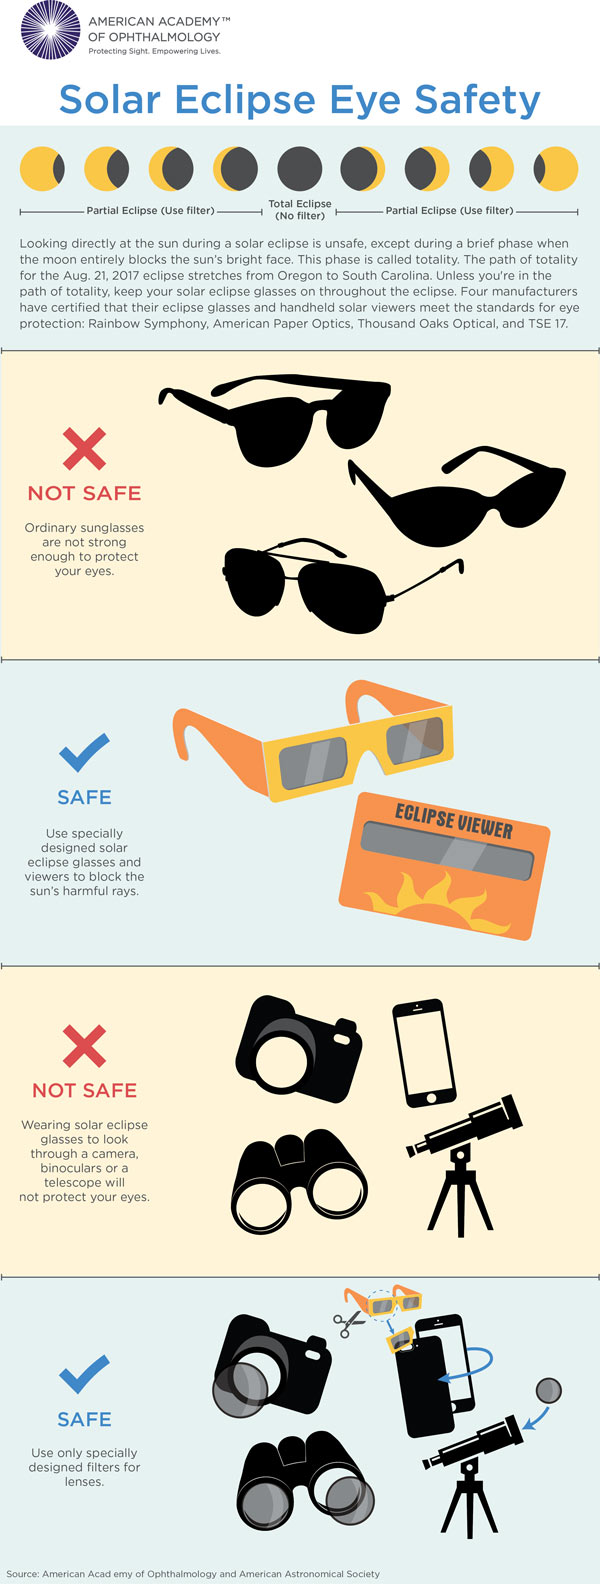 AAO Eclipse Eye Safety Infographic